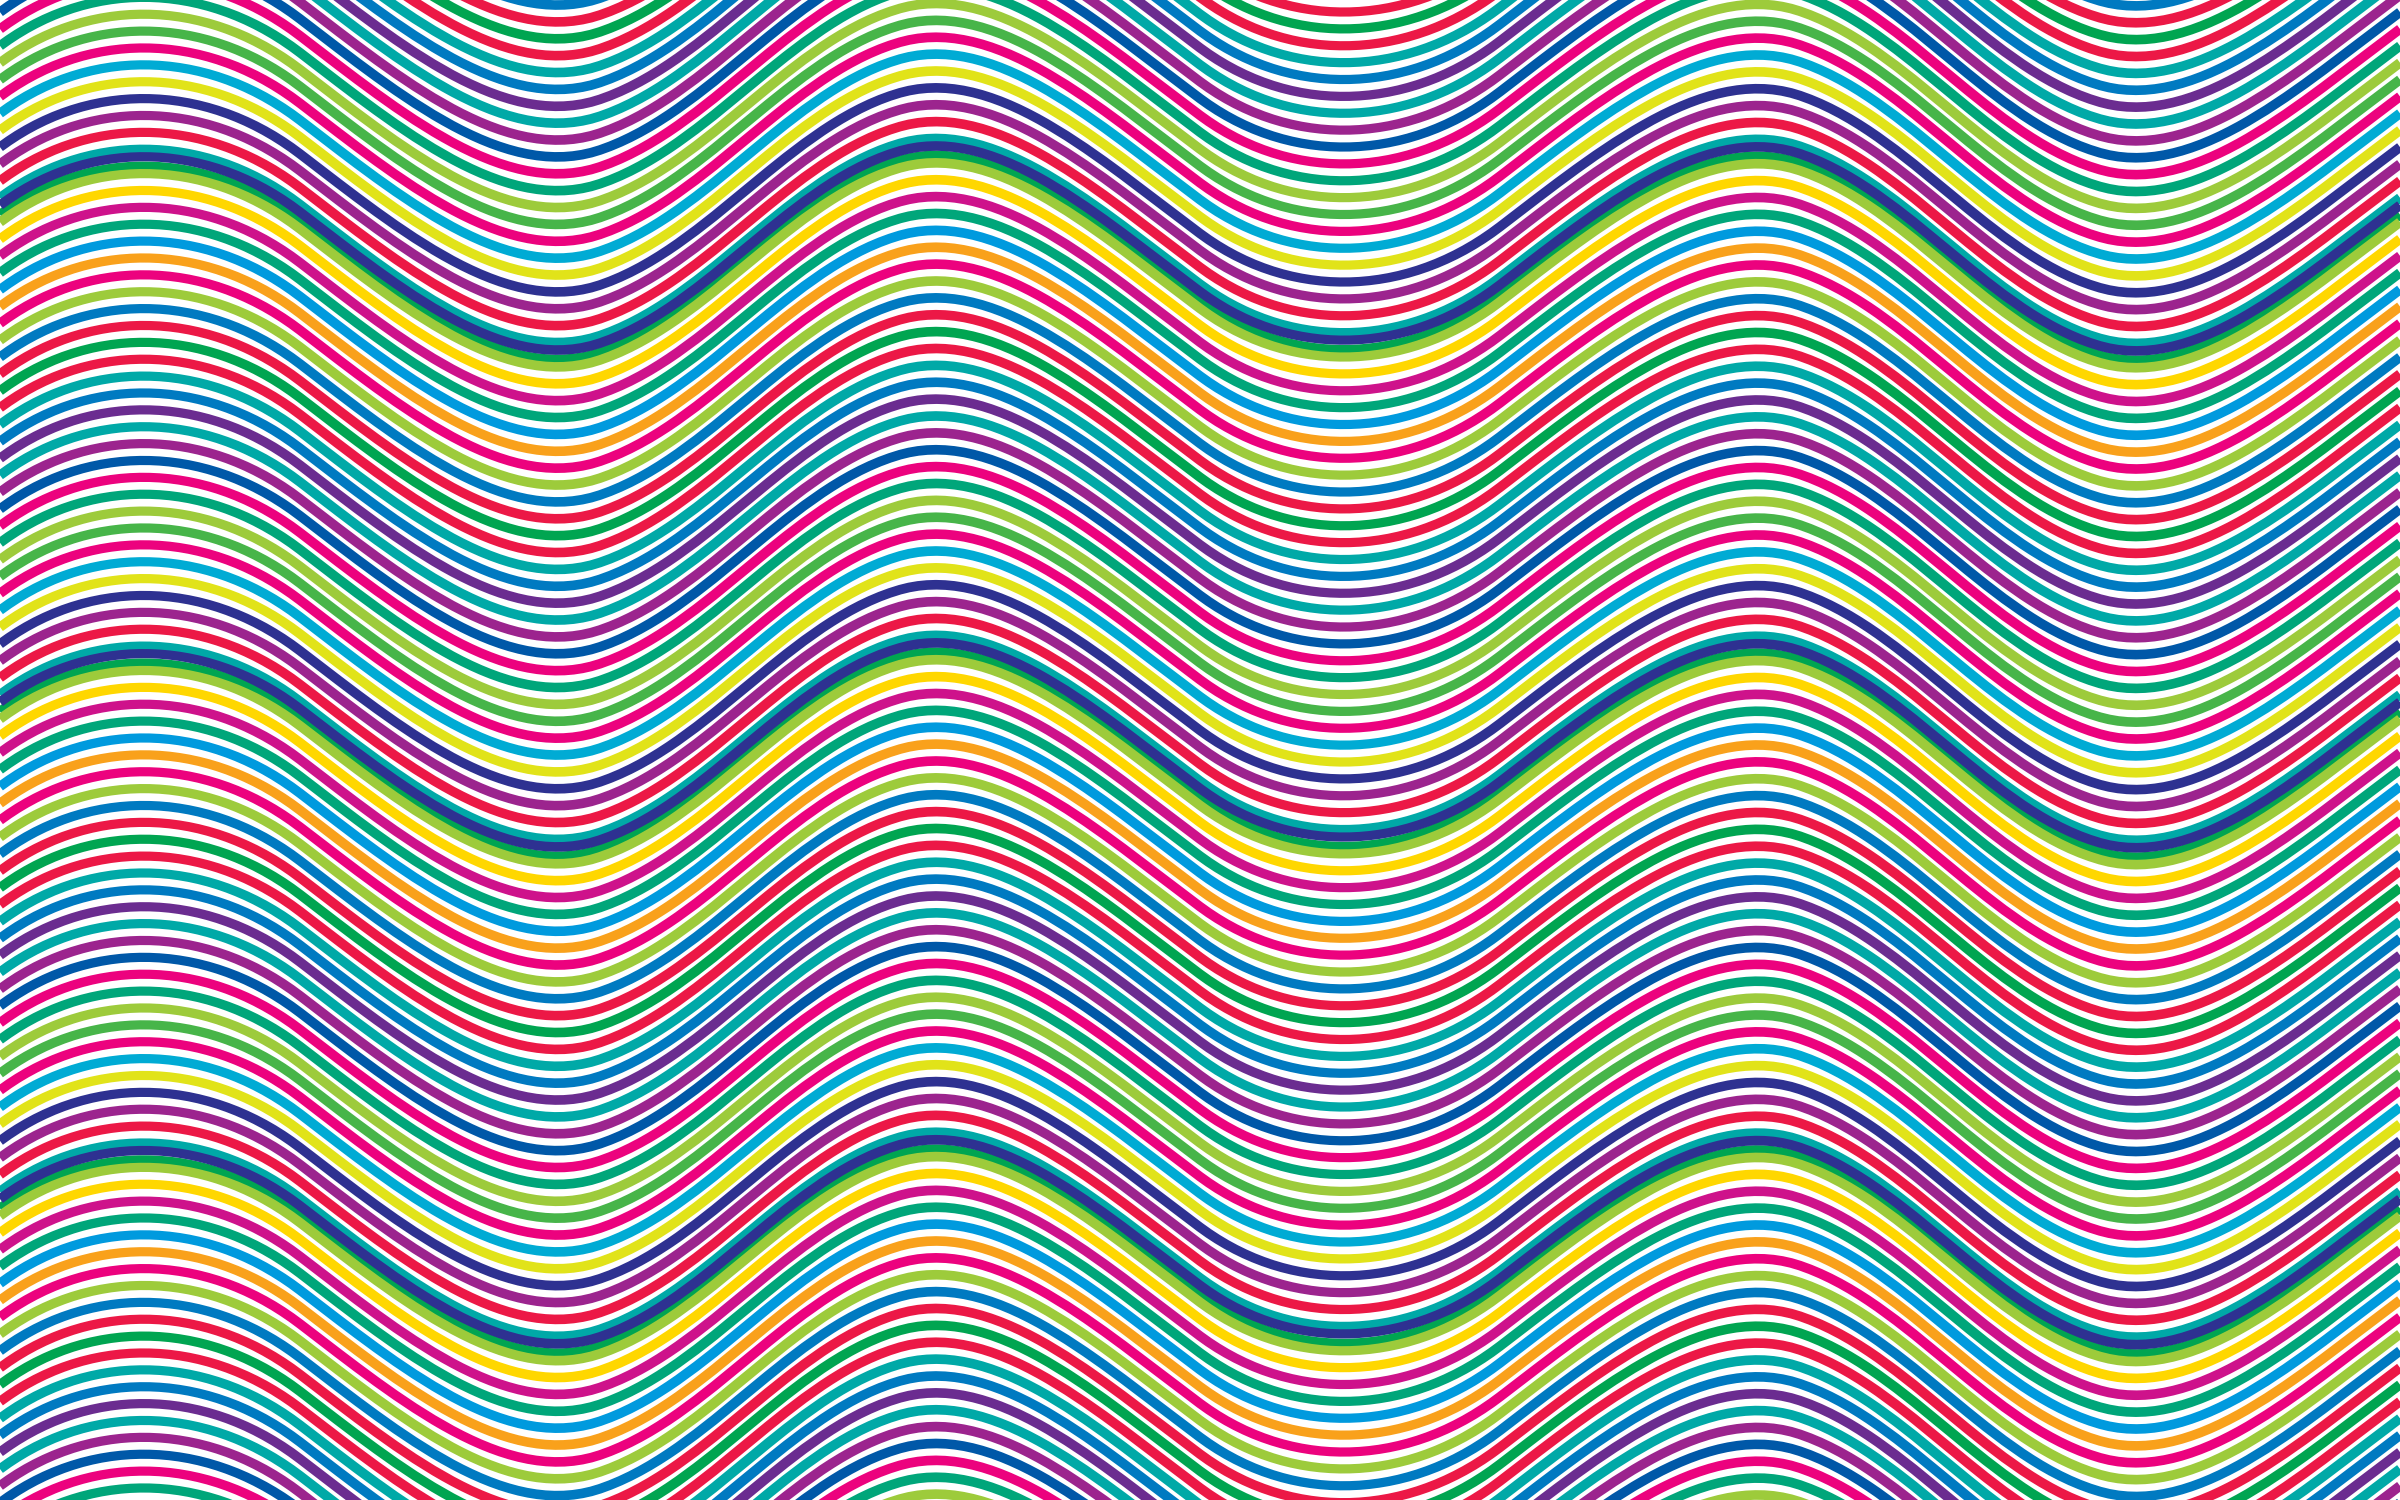 Background png images. Clipart prismatic waves no